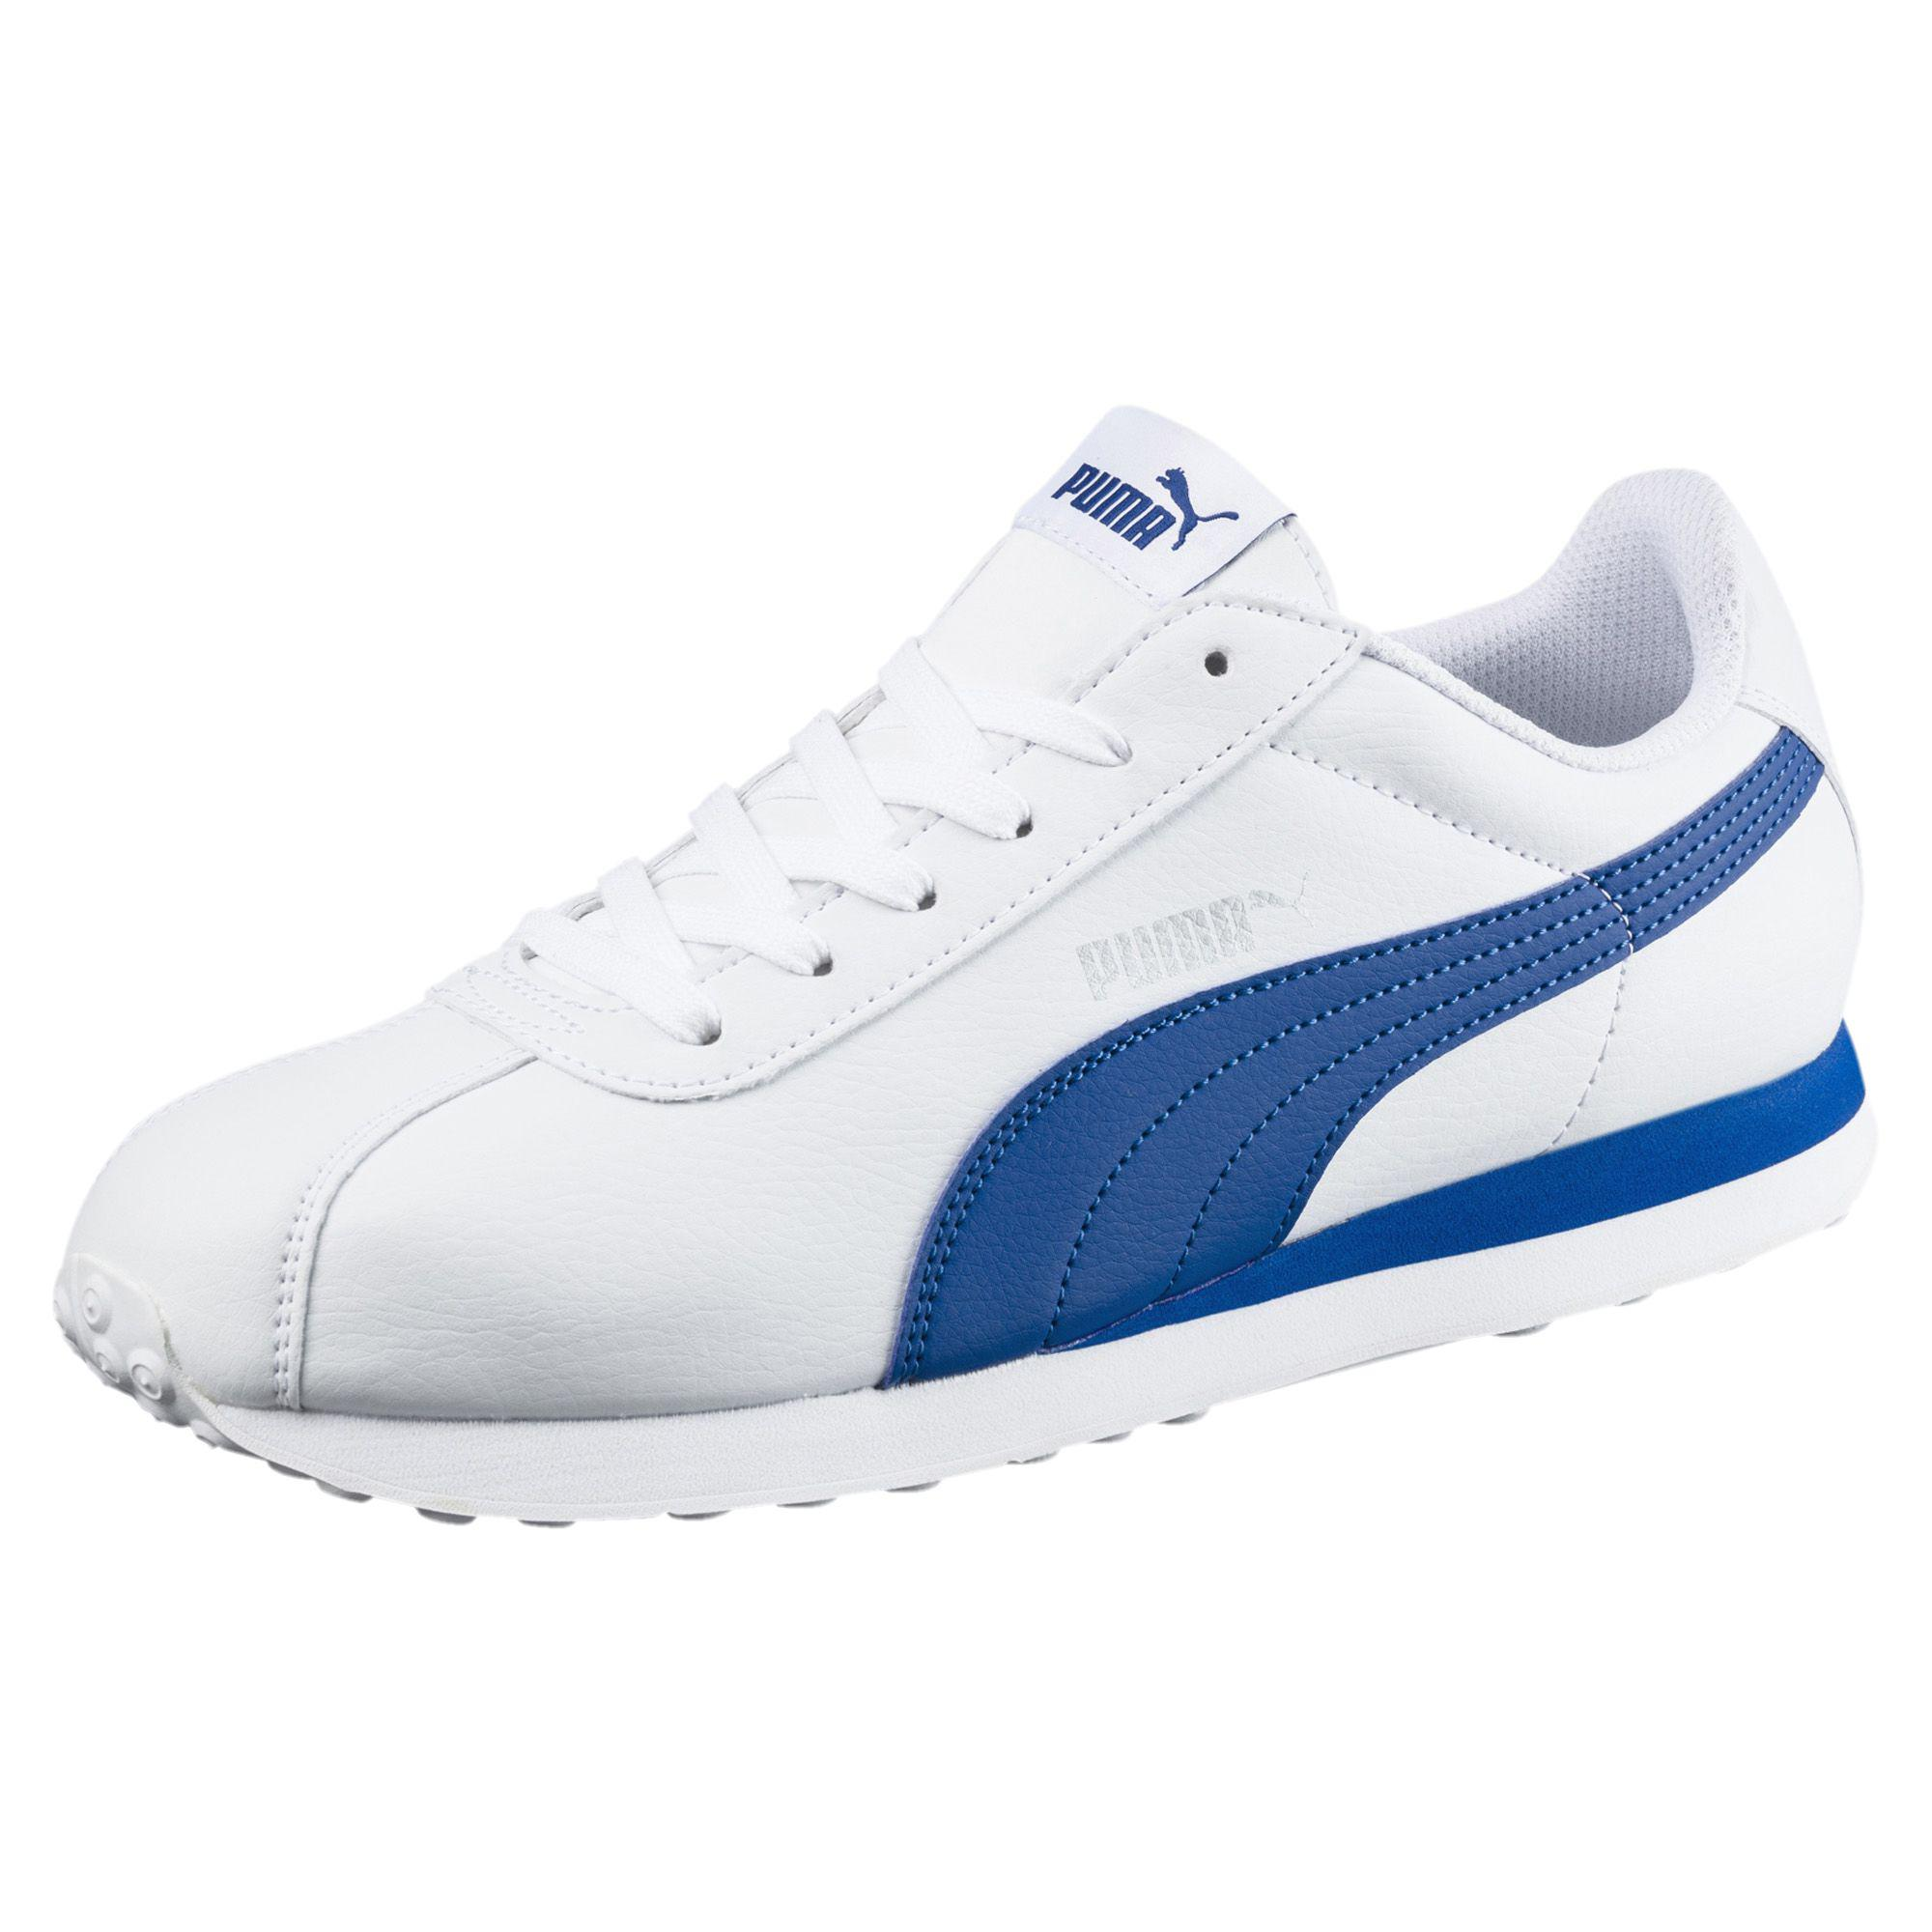 PUMA Leather Turin Men's Sneakers in Blue for Men - Lyst